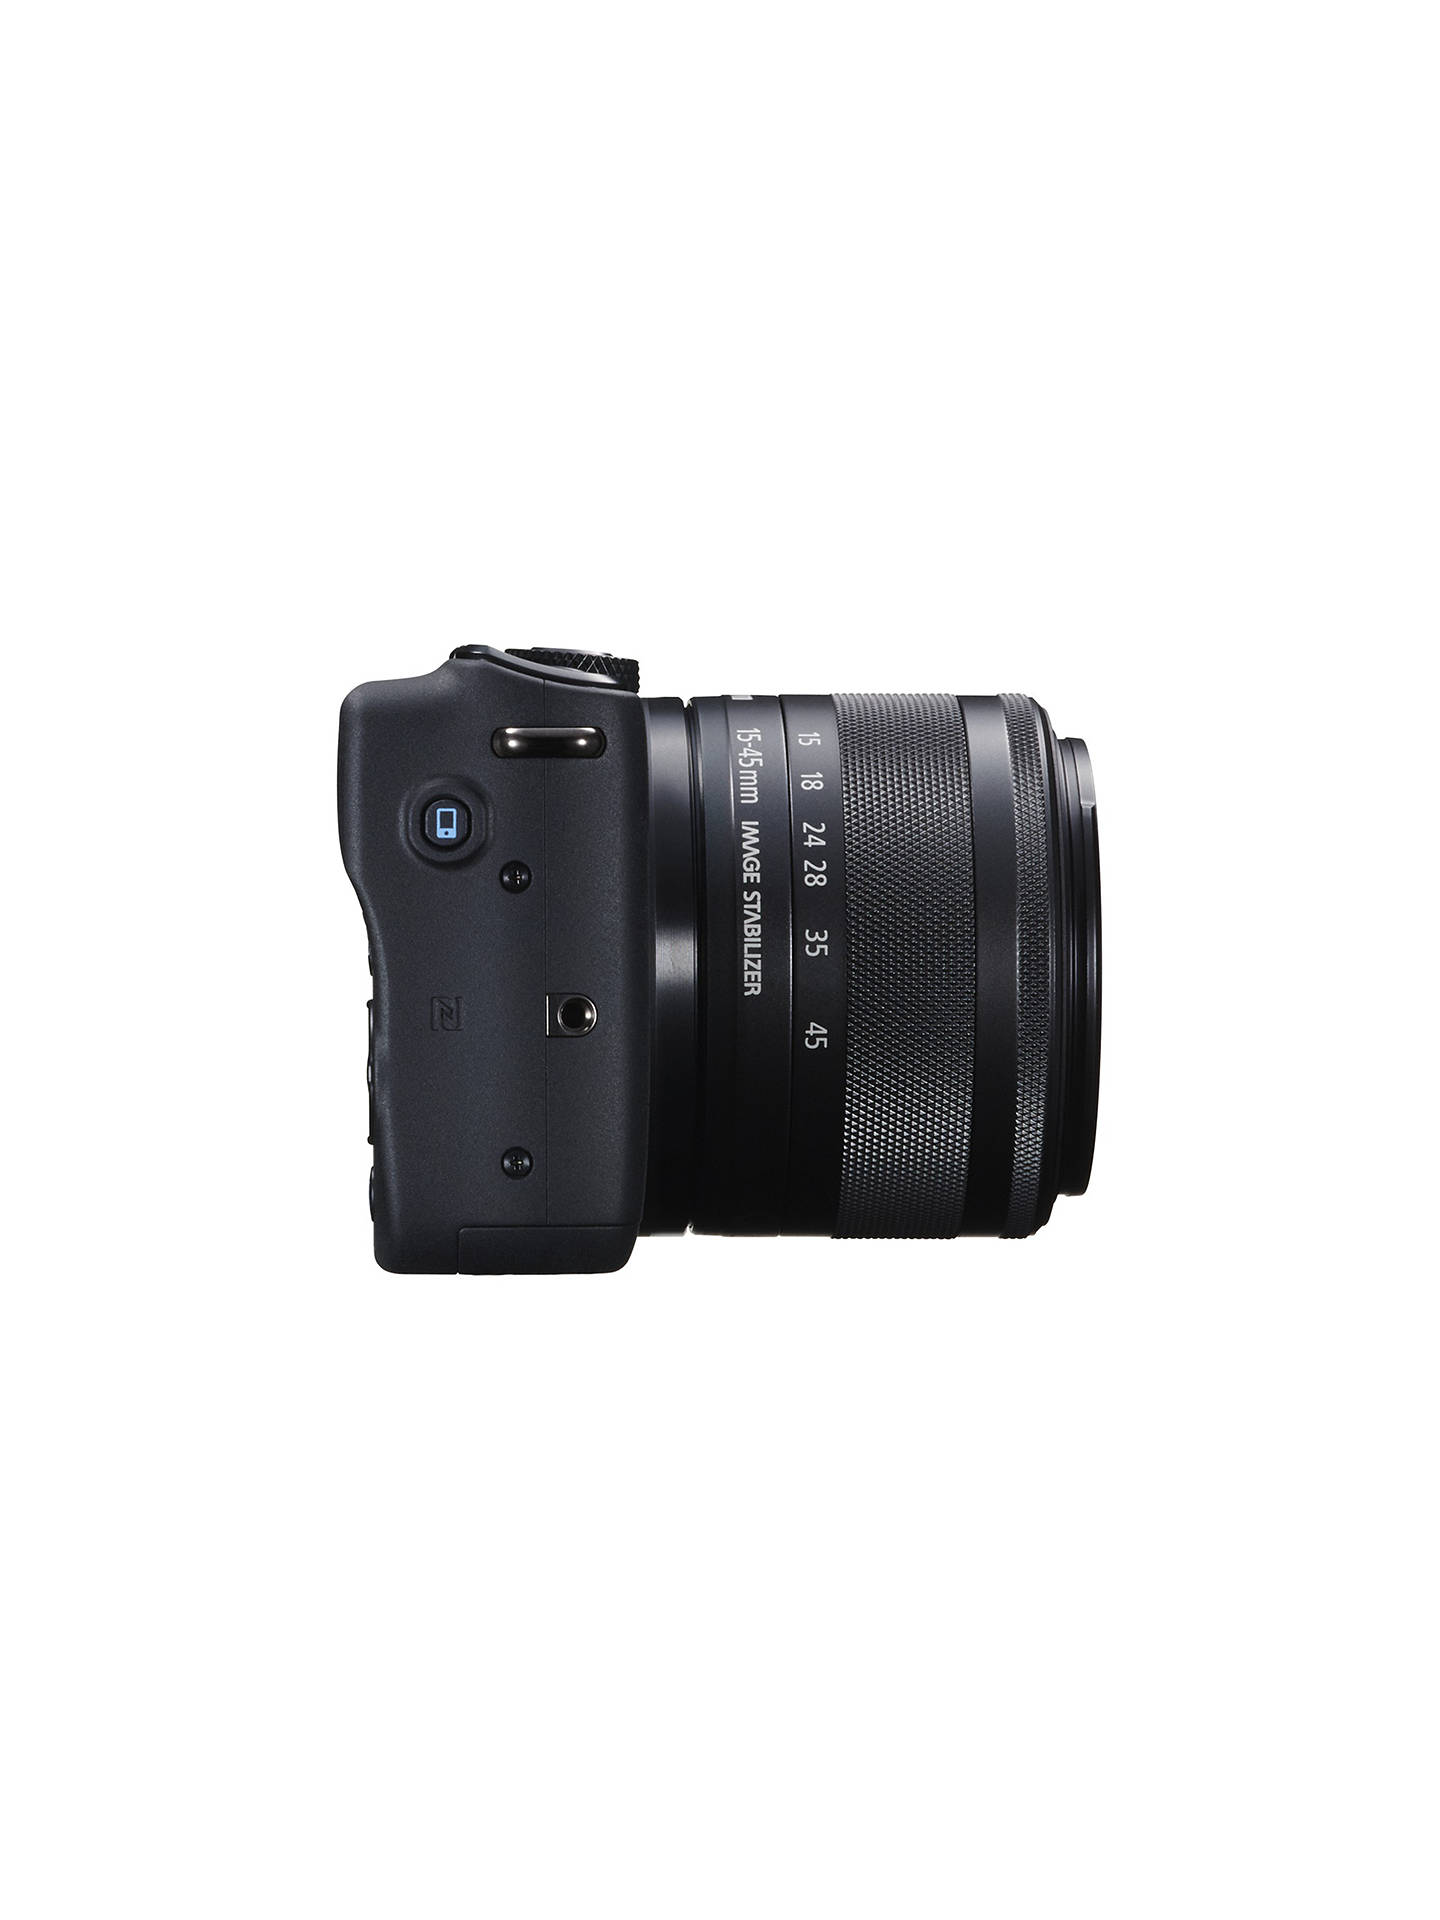 "Buy Canon EOS M10 Compact System Camera with EF-M 15-45mm f/3.5-6.3 IS STM Wide Angle Zoom Lens, HD 1080p, 18MP, NFC, Wi-Fi, 3"" Touch Screen, Black Online at johnlewis.com"